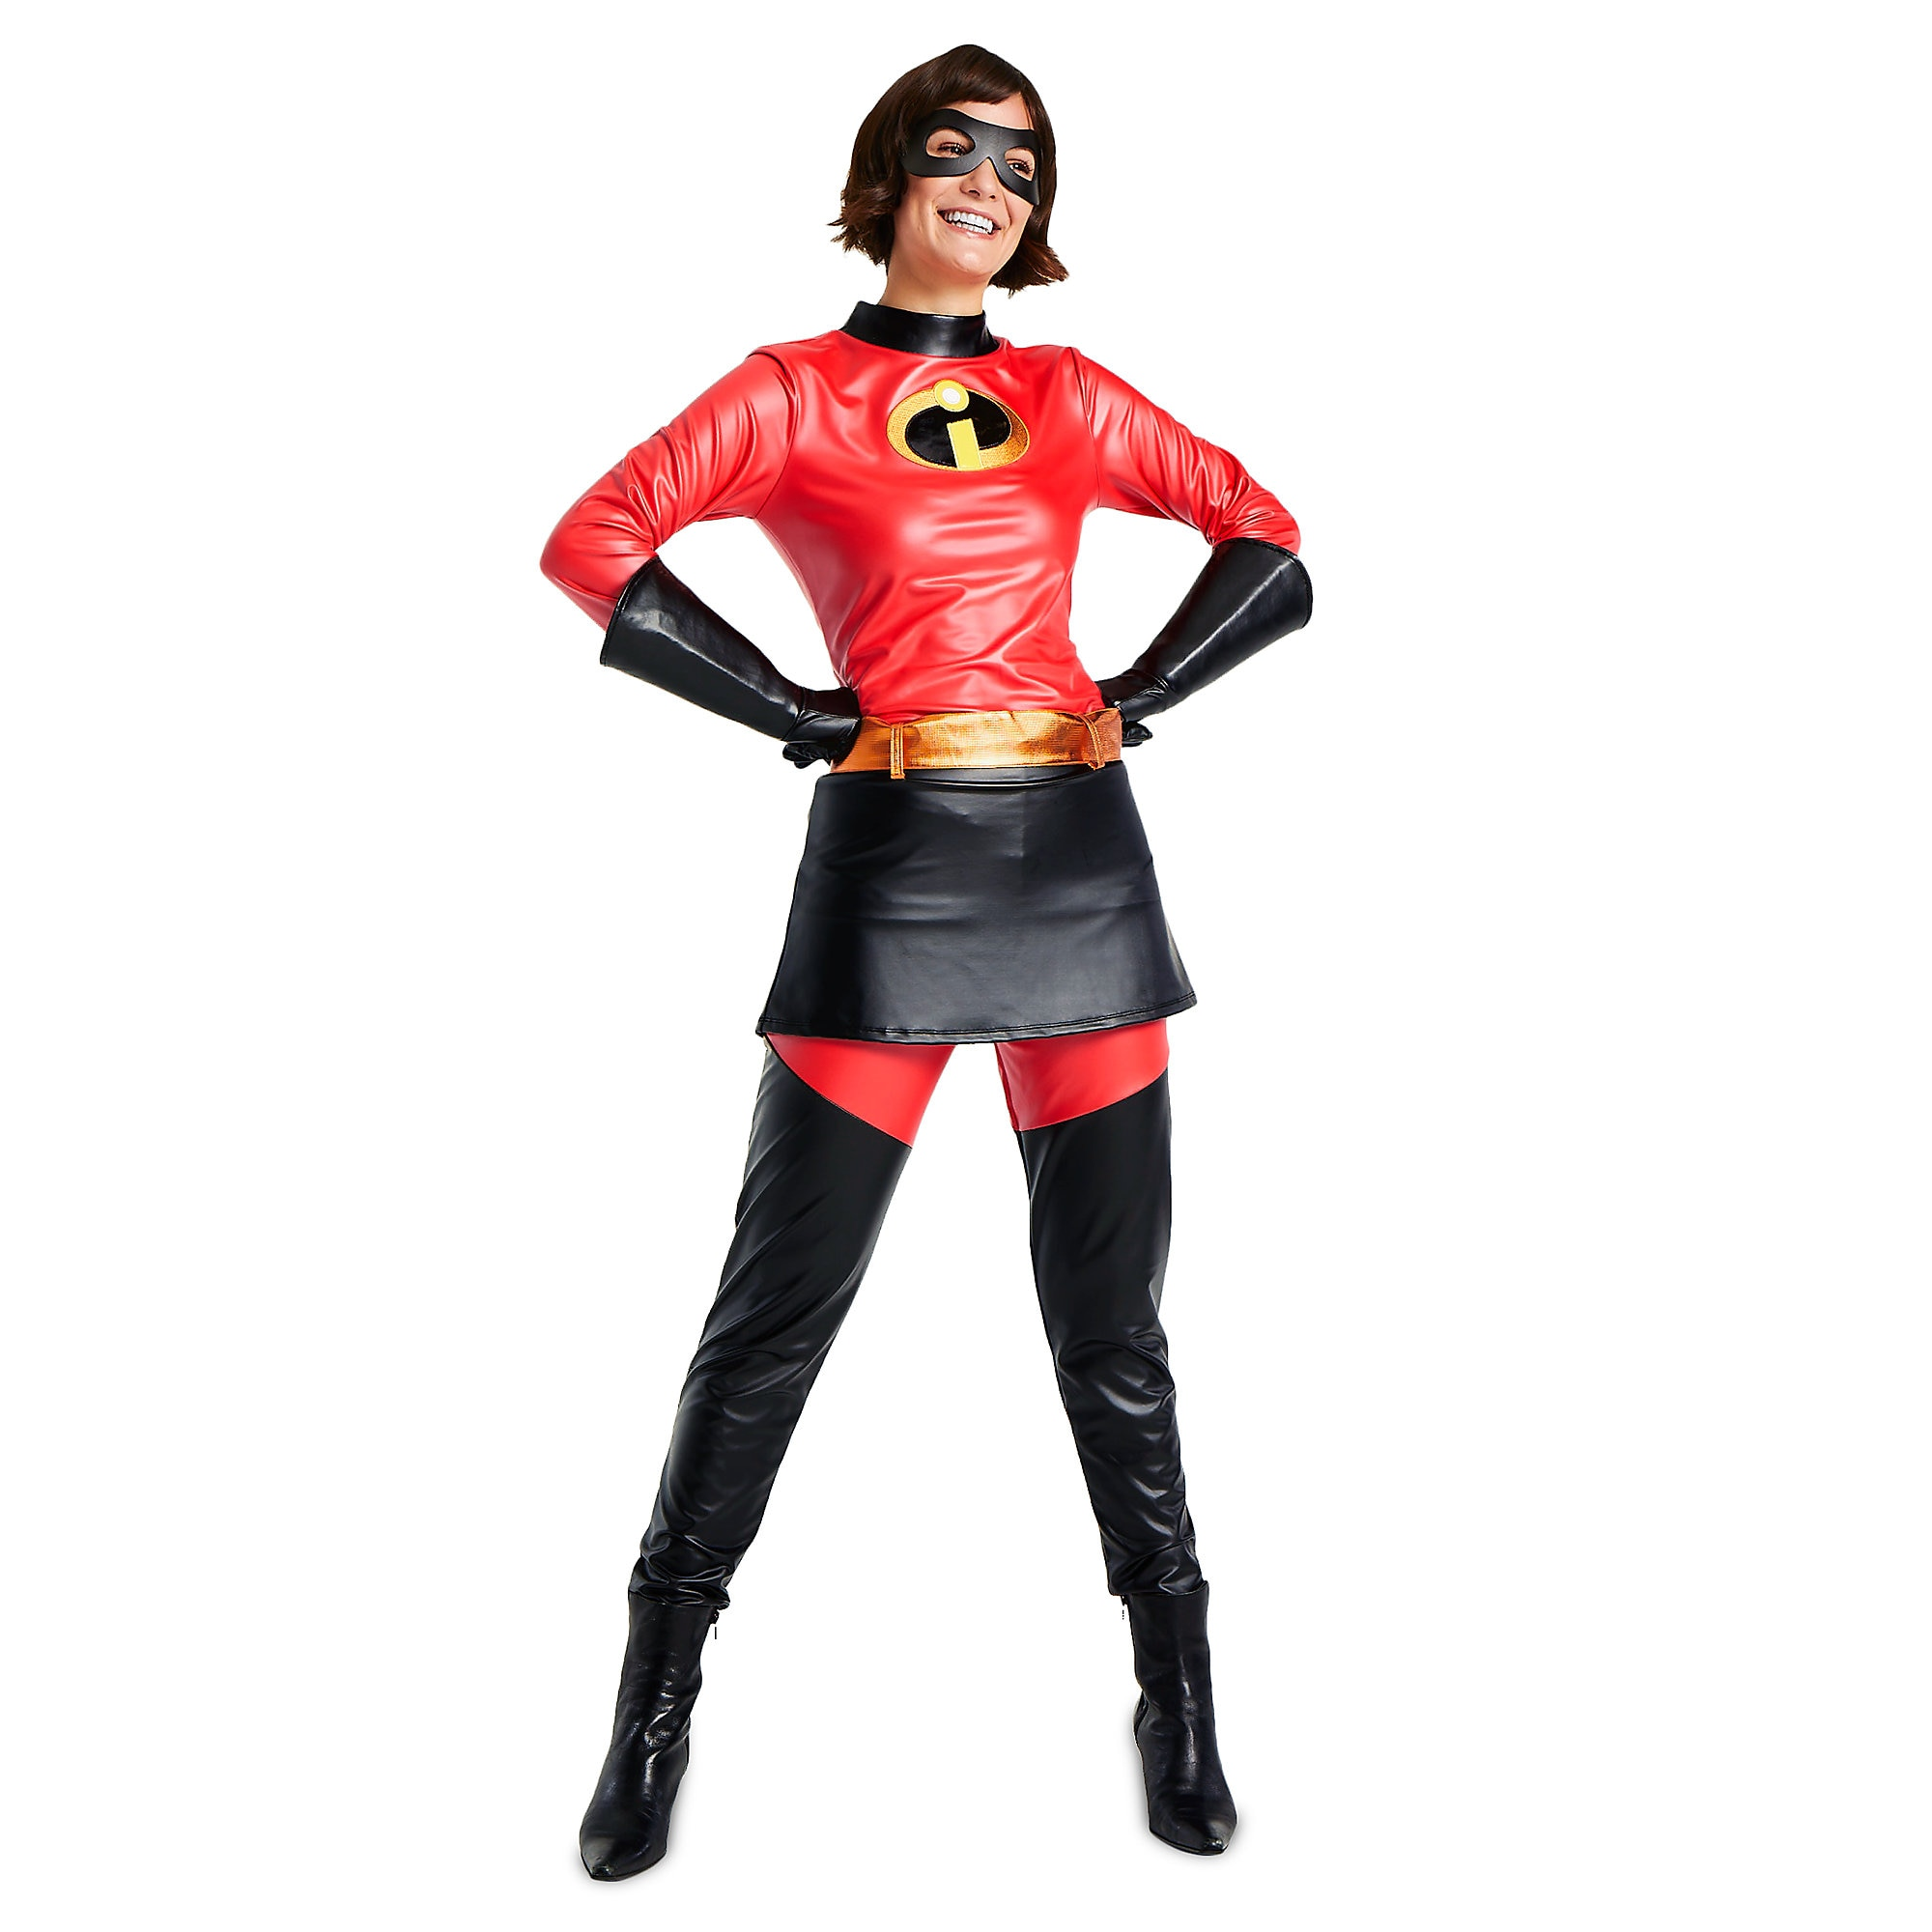 Mrs. Incredible Costume for Adults - Incredibles 2  sc 1 st  shopDisney & Mrs. Incredible Costume for Adults - Incredibles 2 | shopDisney